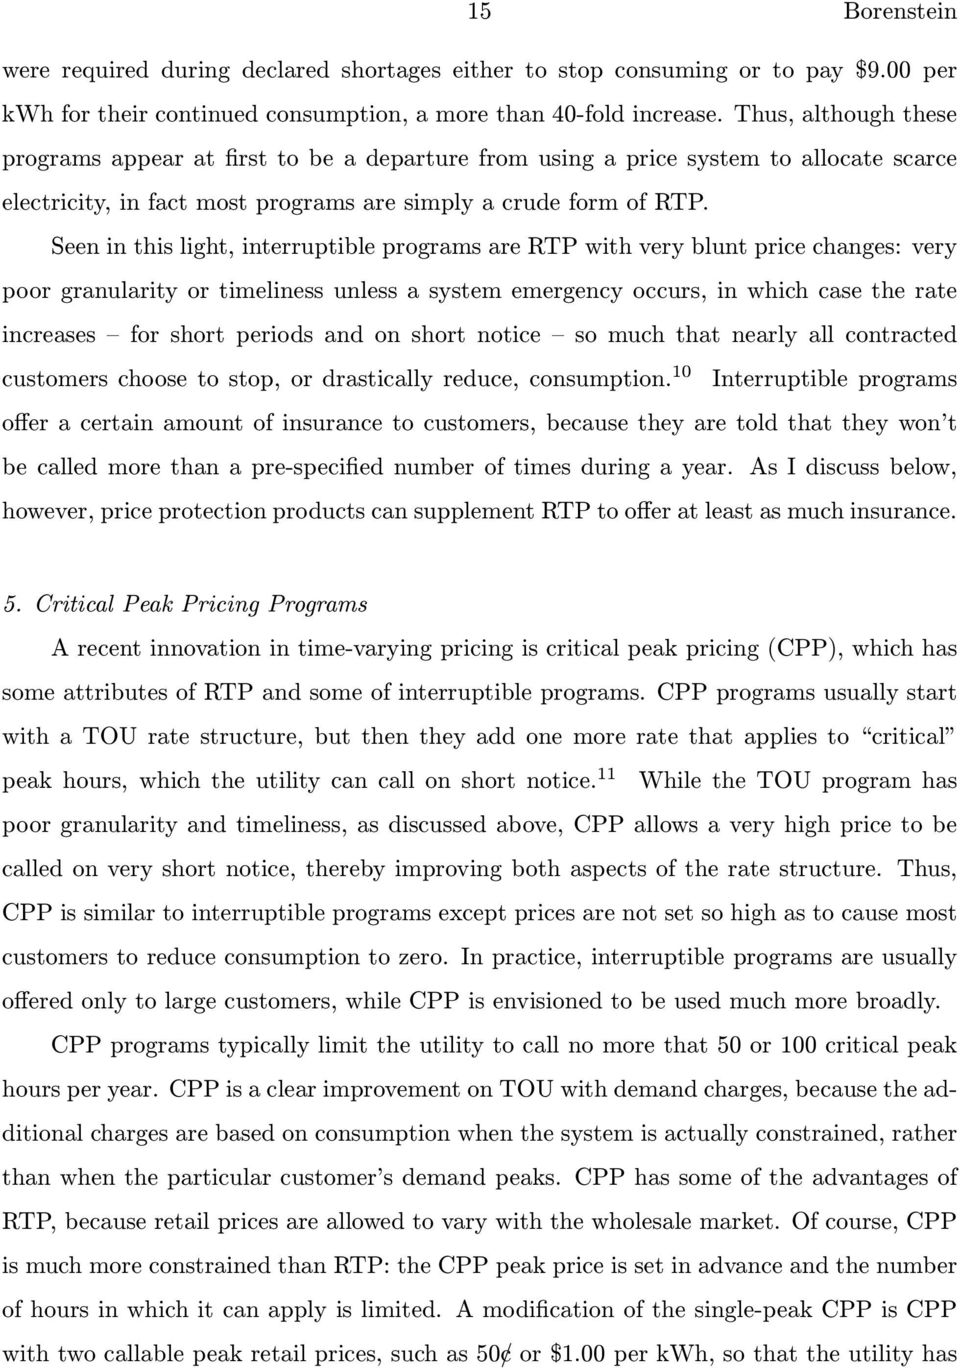 Seen in this light, interruptible programs are RTP with very blunt price changes: very poor granularity or timeliness unless a system emergency occurs, in which case the rate increases for short